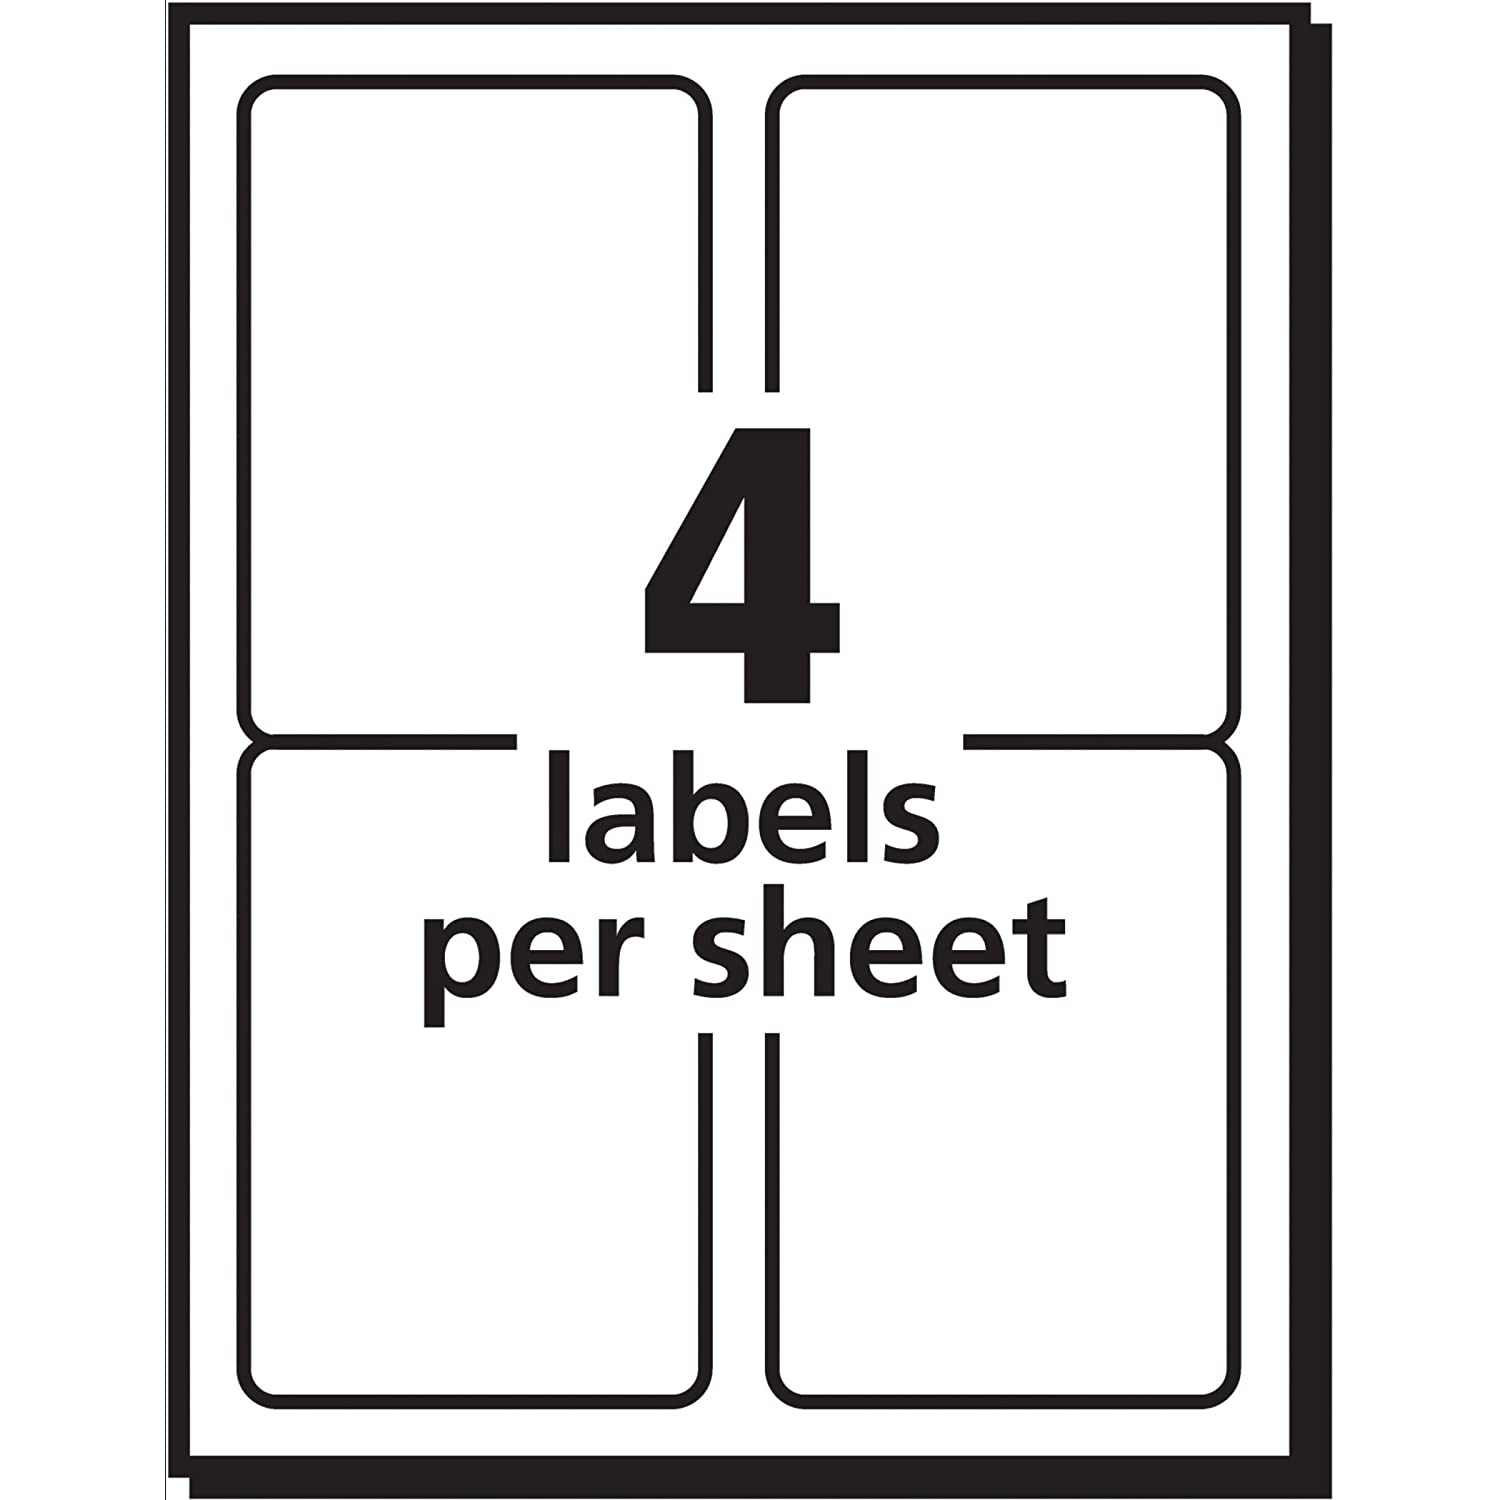 avery shipping labels for inkjet printers 3 5 x 5 inches box of 100 8168 n 72782081683 ebay. Black Bedroom Furniture Sets. Home Design Ideas